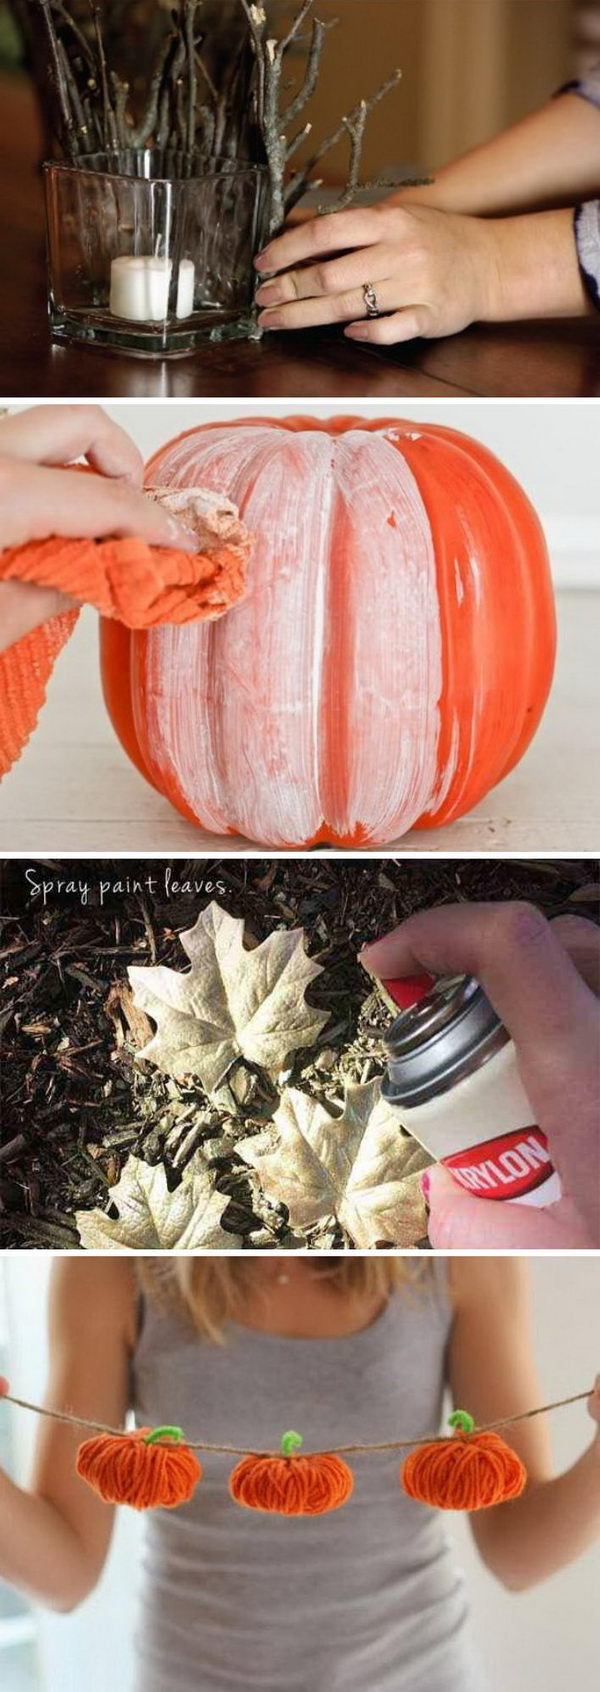 thanksgiving turkey craft ideas 40 thanksgiving craft ideas 2018 5573